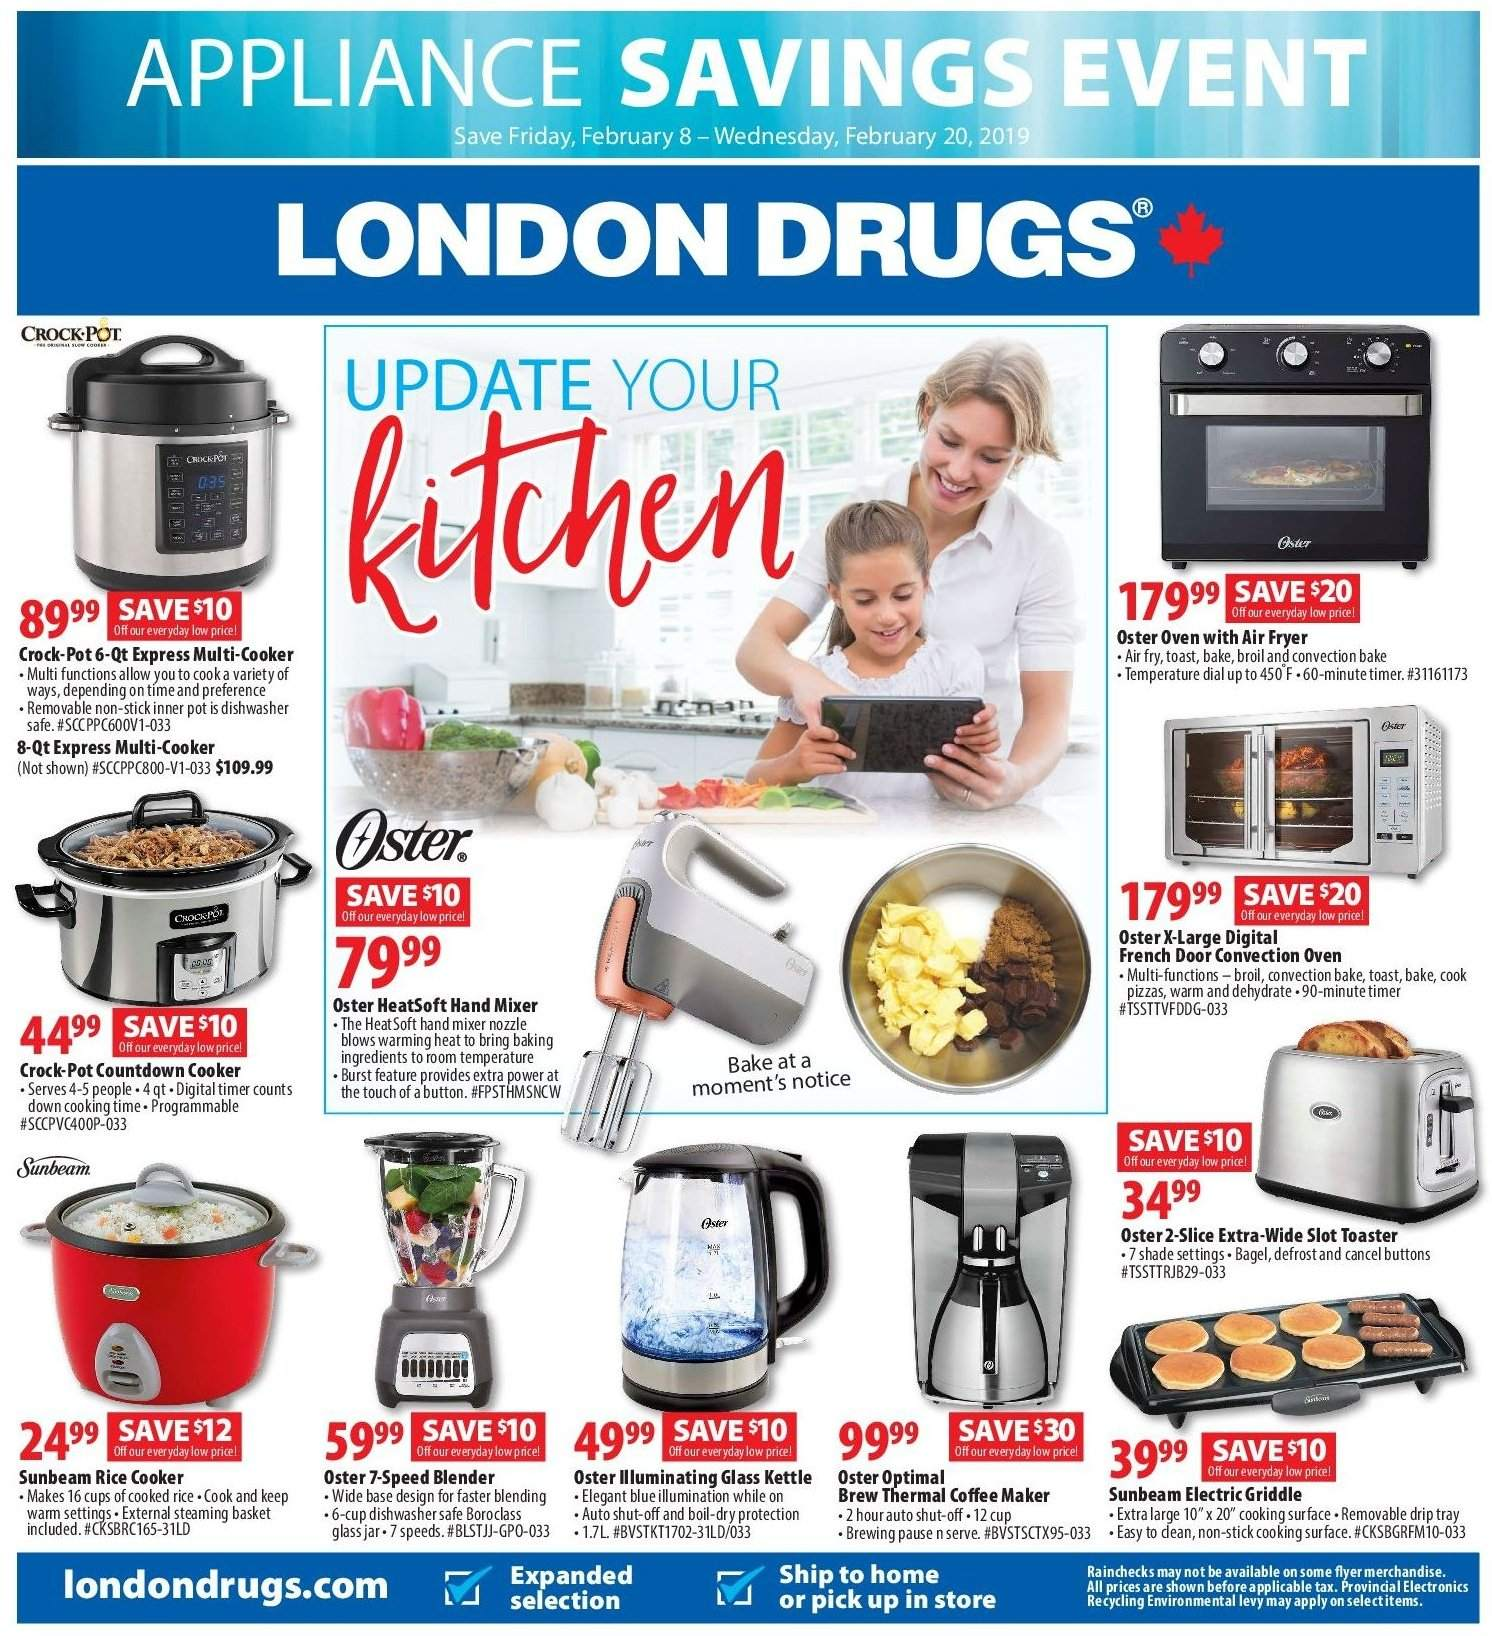 London Drugs Flyer - February 08, 2019 - February 20, 2019 - Sales products - bagels, basket, blender, coffee, coffee maker, cup, dishwasher, door, fryer, mixer, rice, safe, stick, surface, timer, tray, hand mixer, pot, oven, air fryer, toaster, base, thé. Page 1.